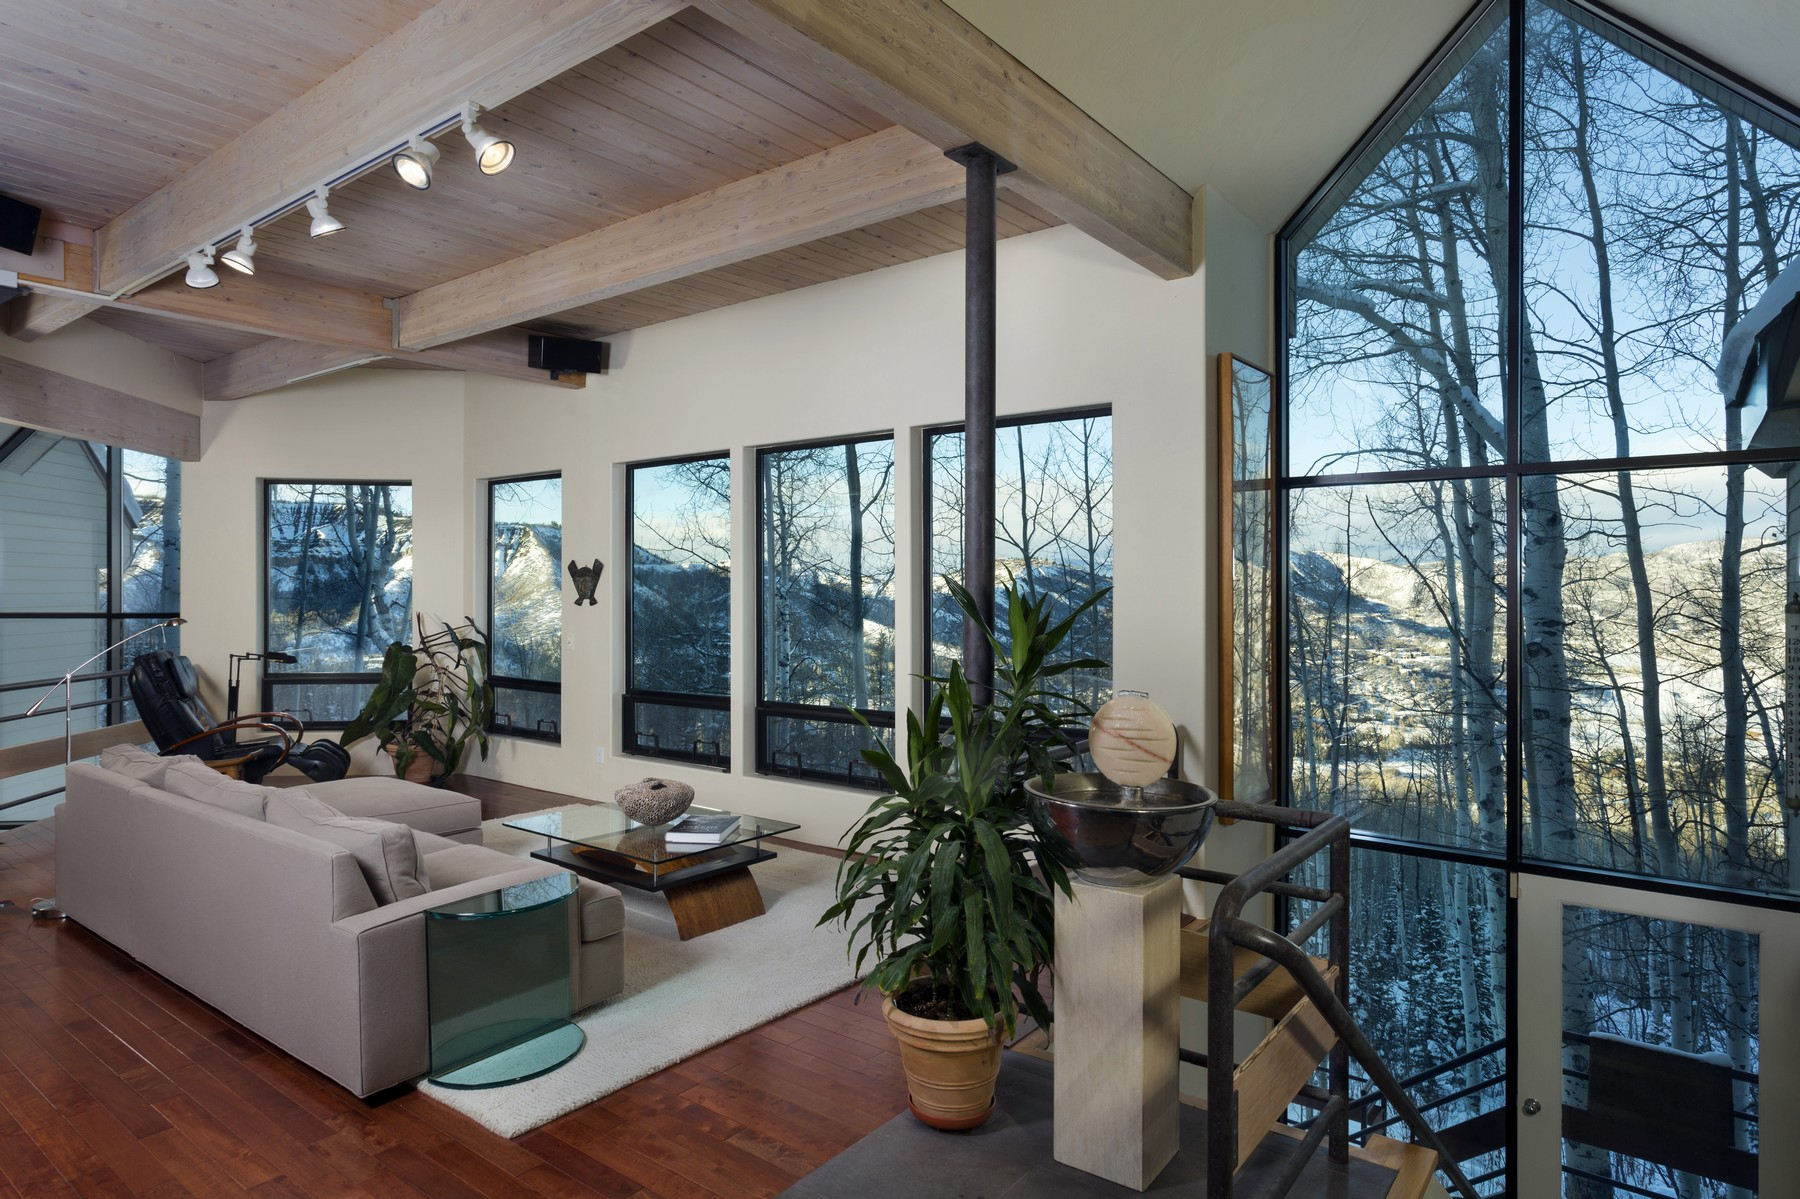 Single Family Home for Sale at Soft Contemporary with Sweeping Views 71 View Ridge Lane Snowmass Village, Colorado 81615 United States